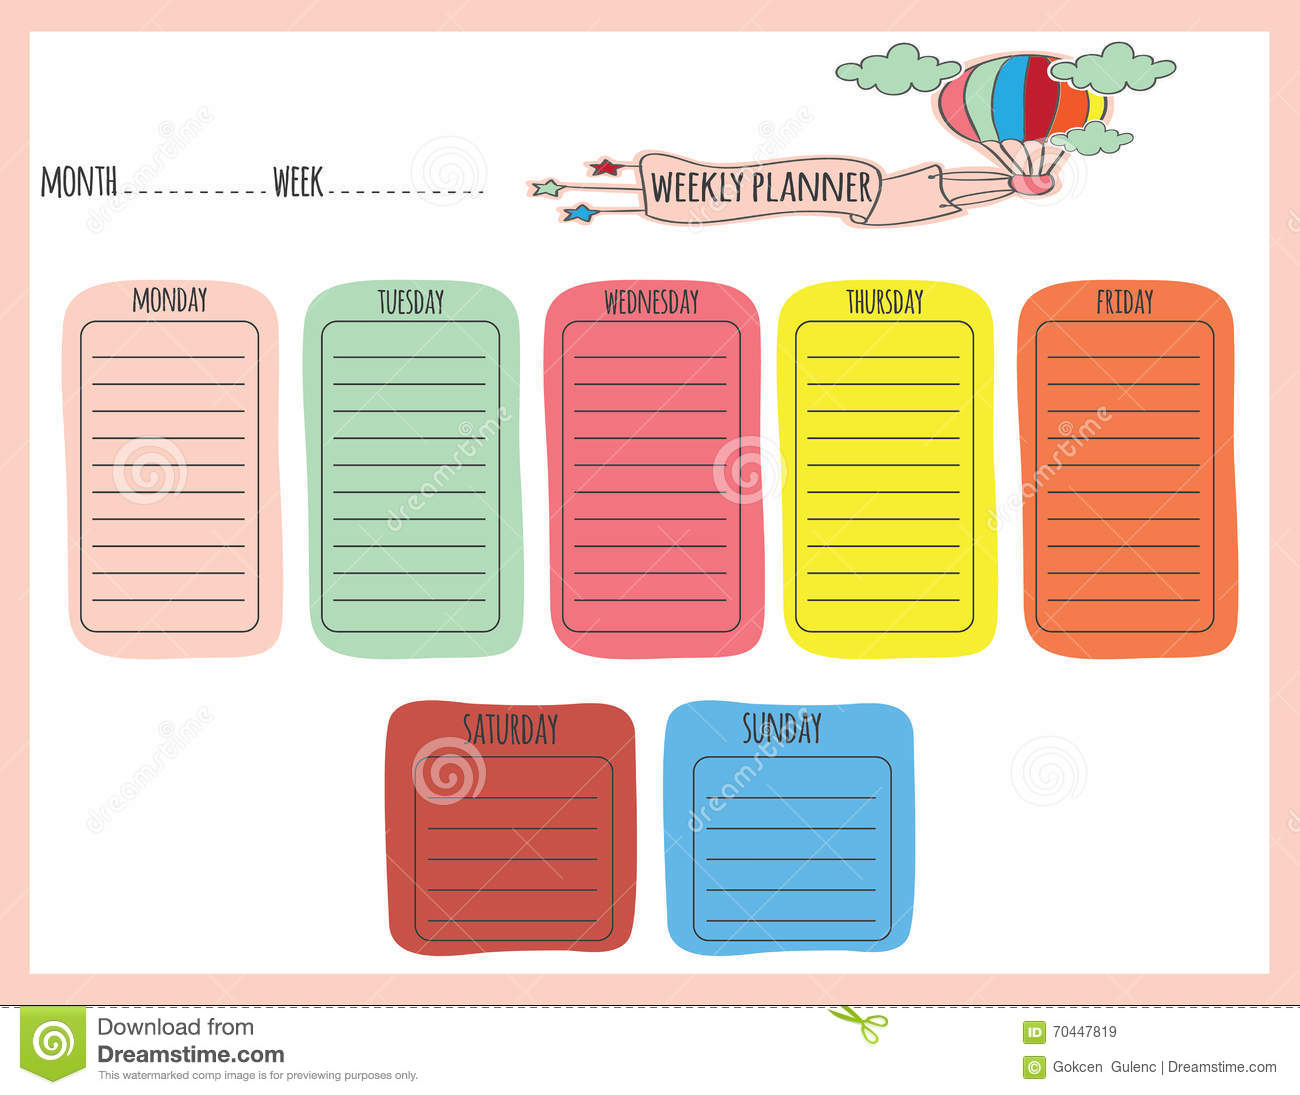 Cute Calendar Weekly Planner Template. Illustration. Organizer and ...